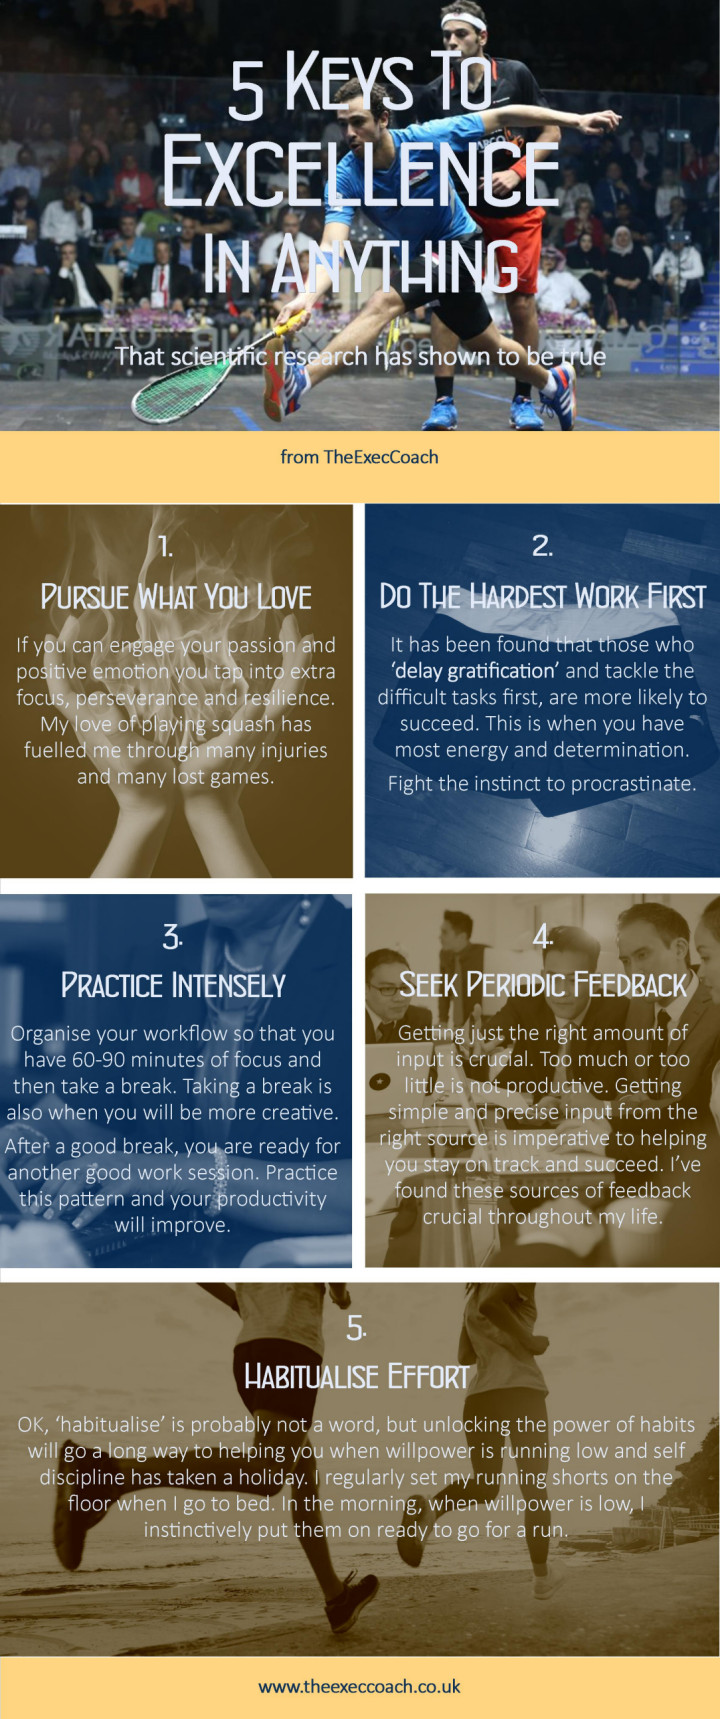 infographic 5 keys to excellence in anything